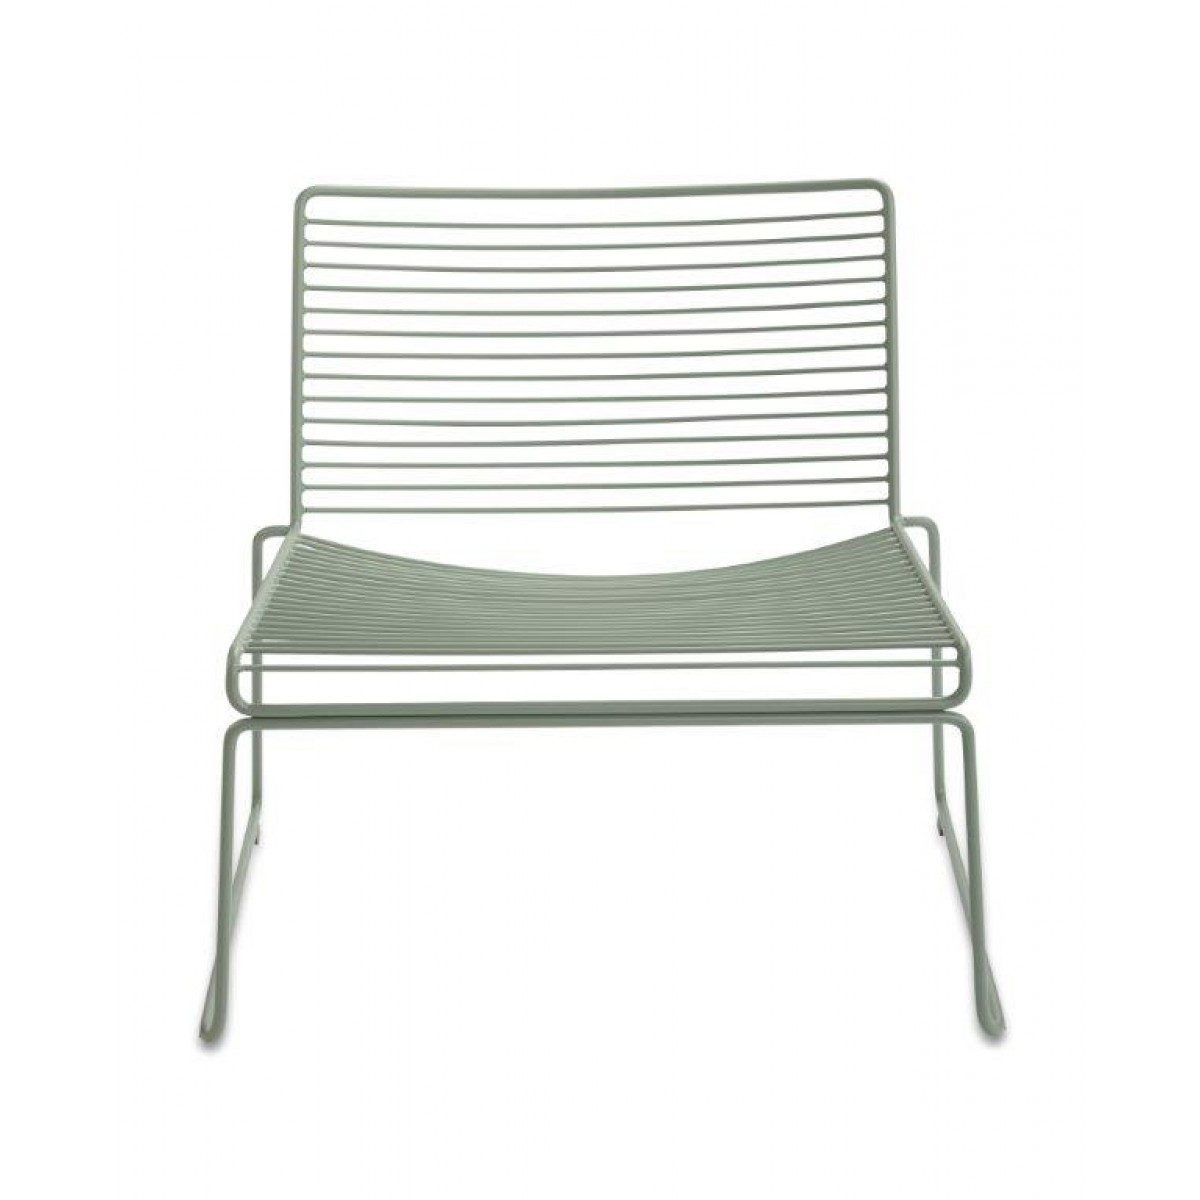 HAY HEE LOUNGE CHAIR - Eclectic Cool  - 2